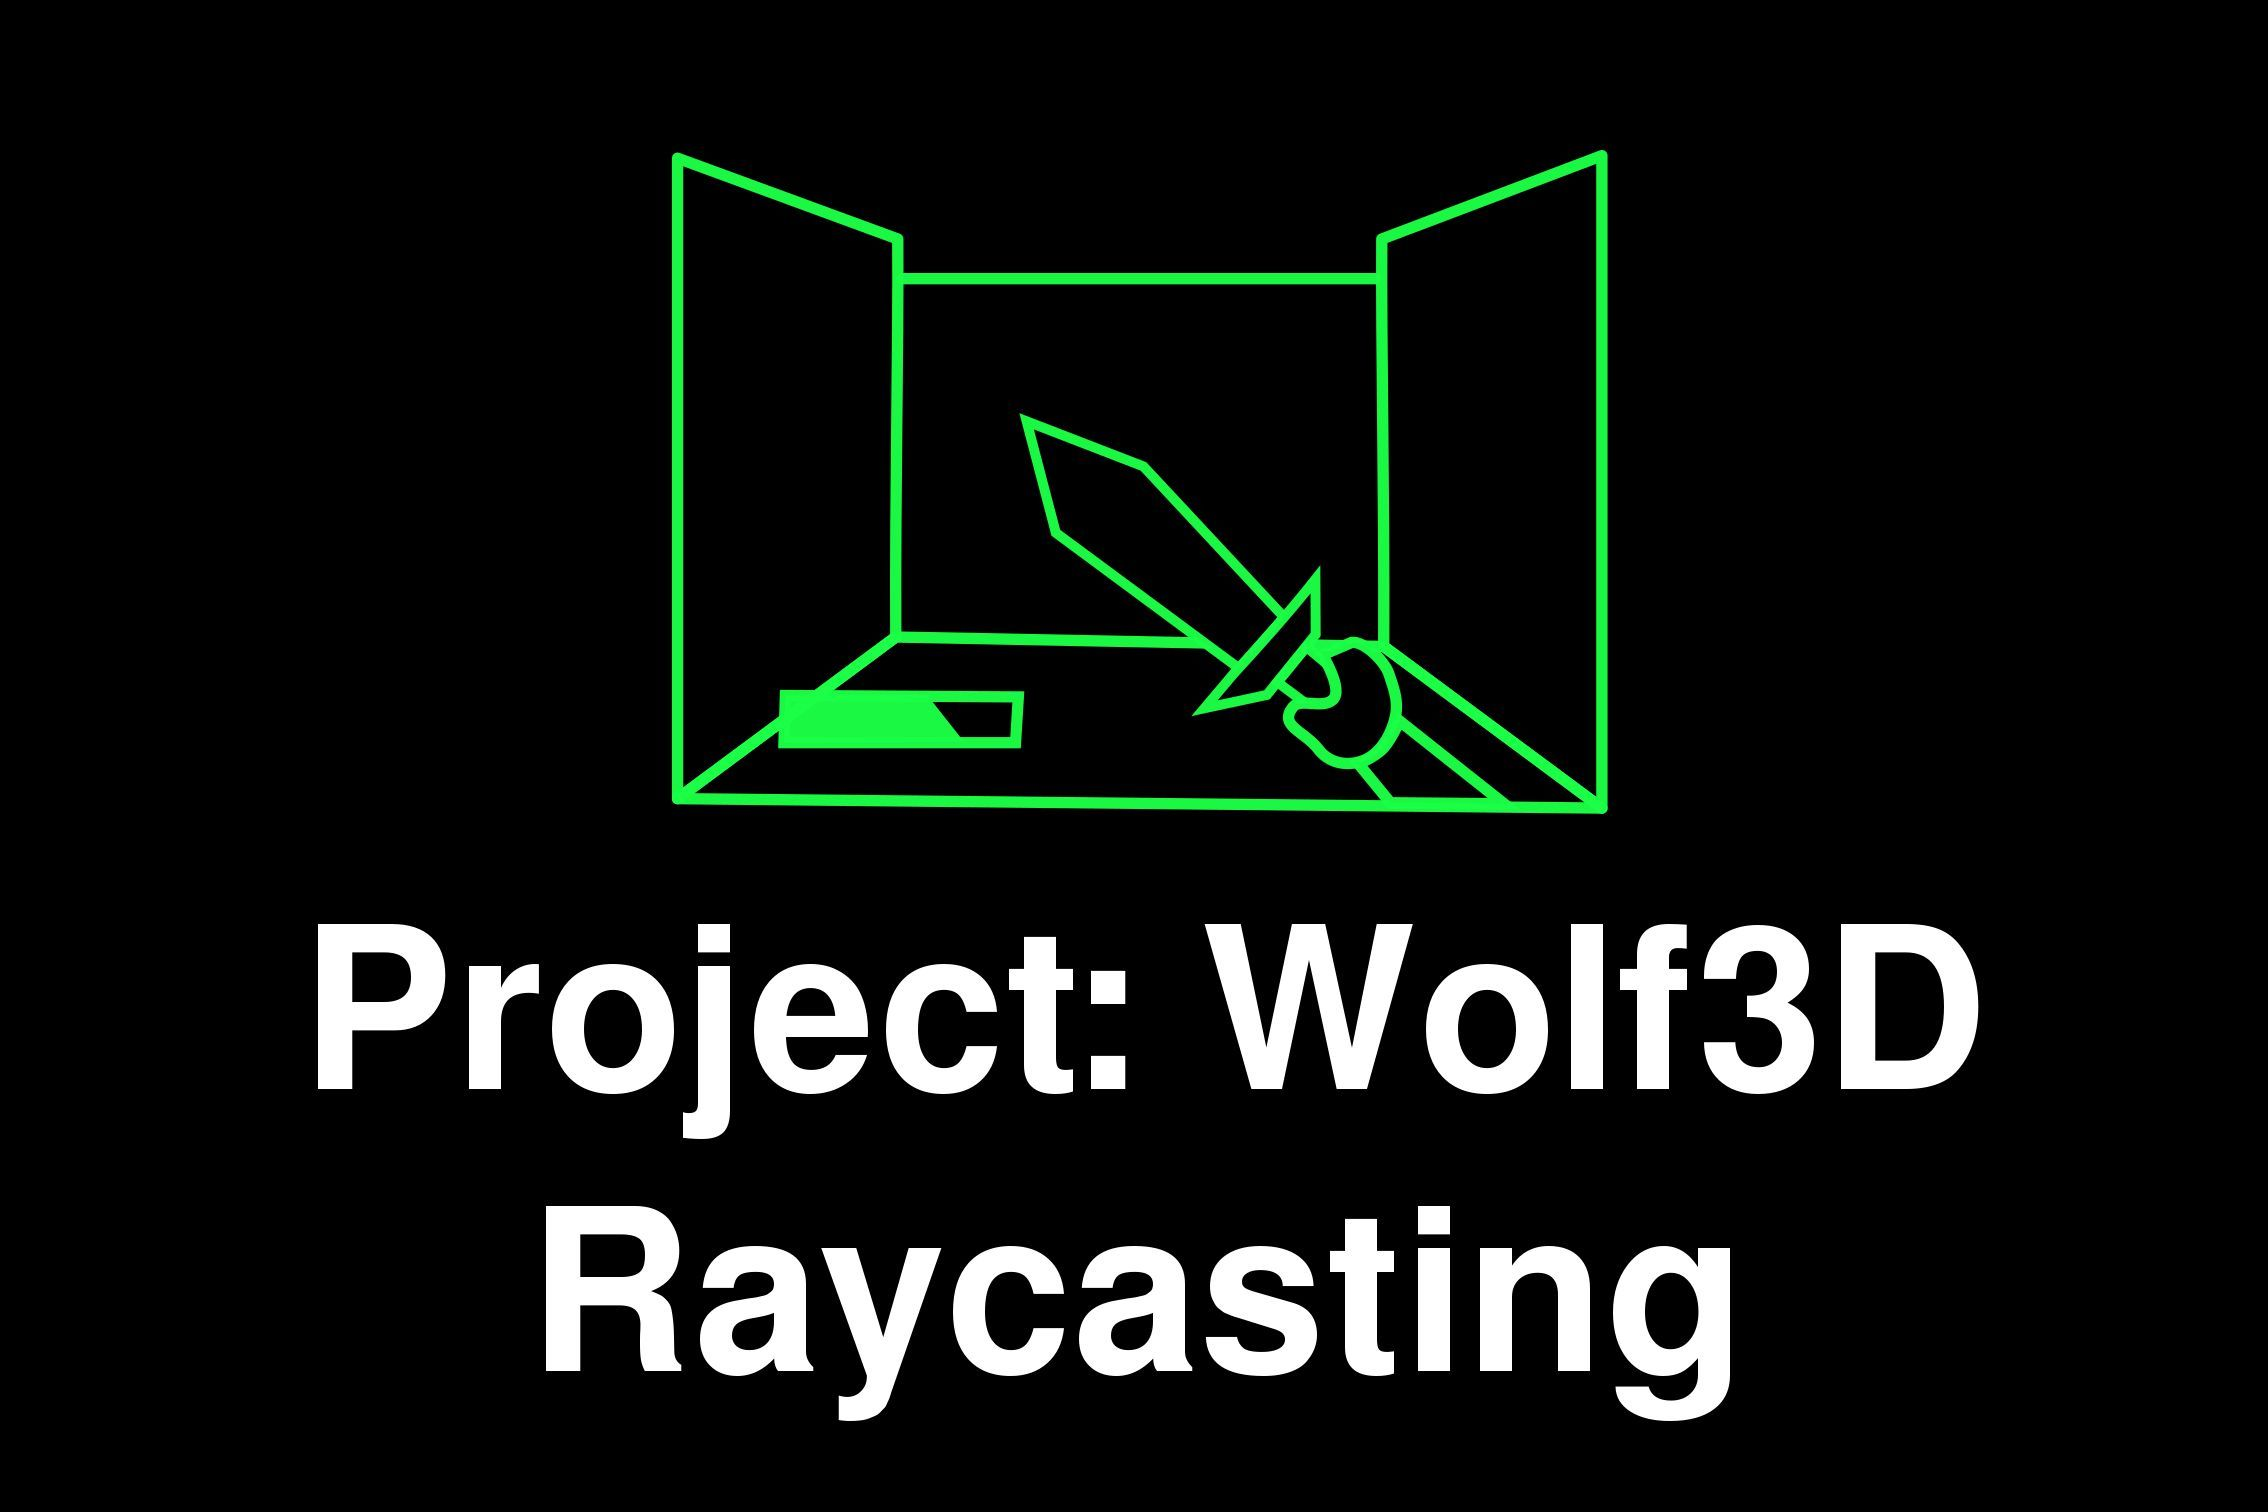 Project Wolf3D